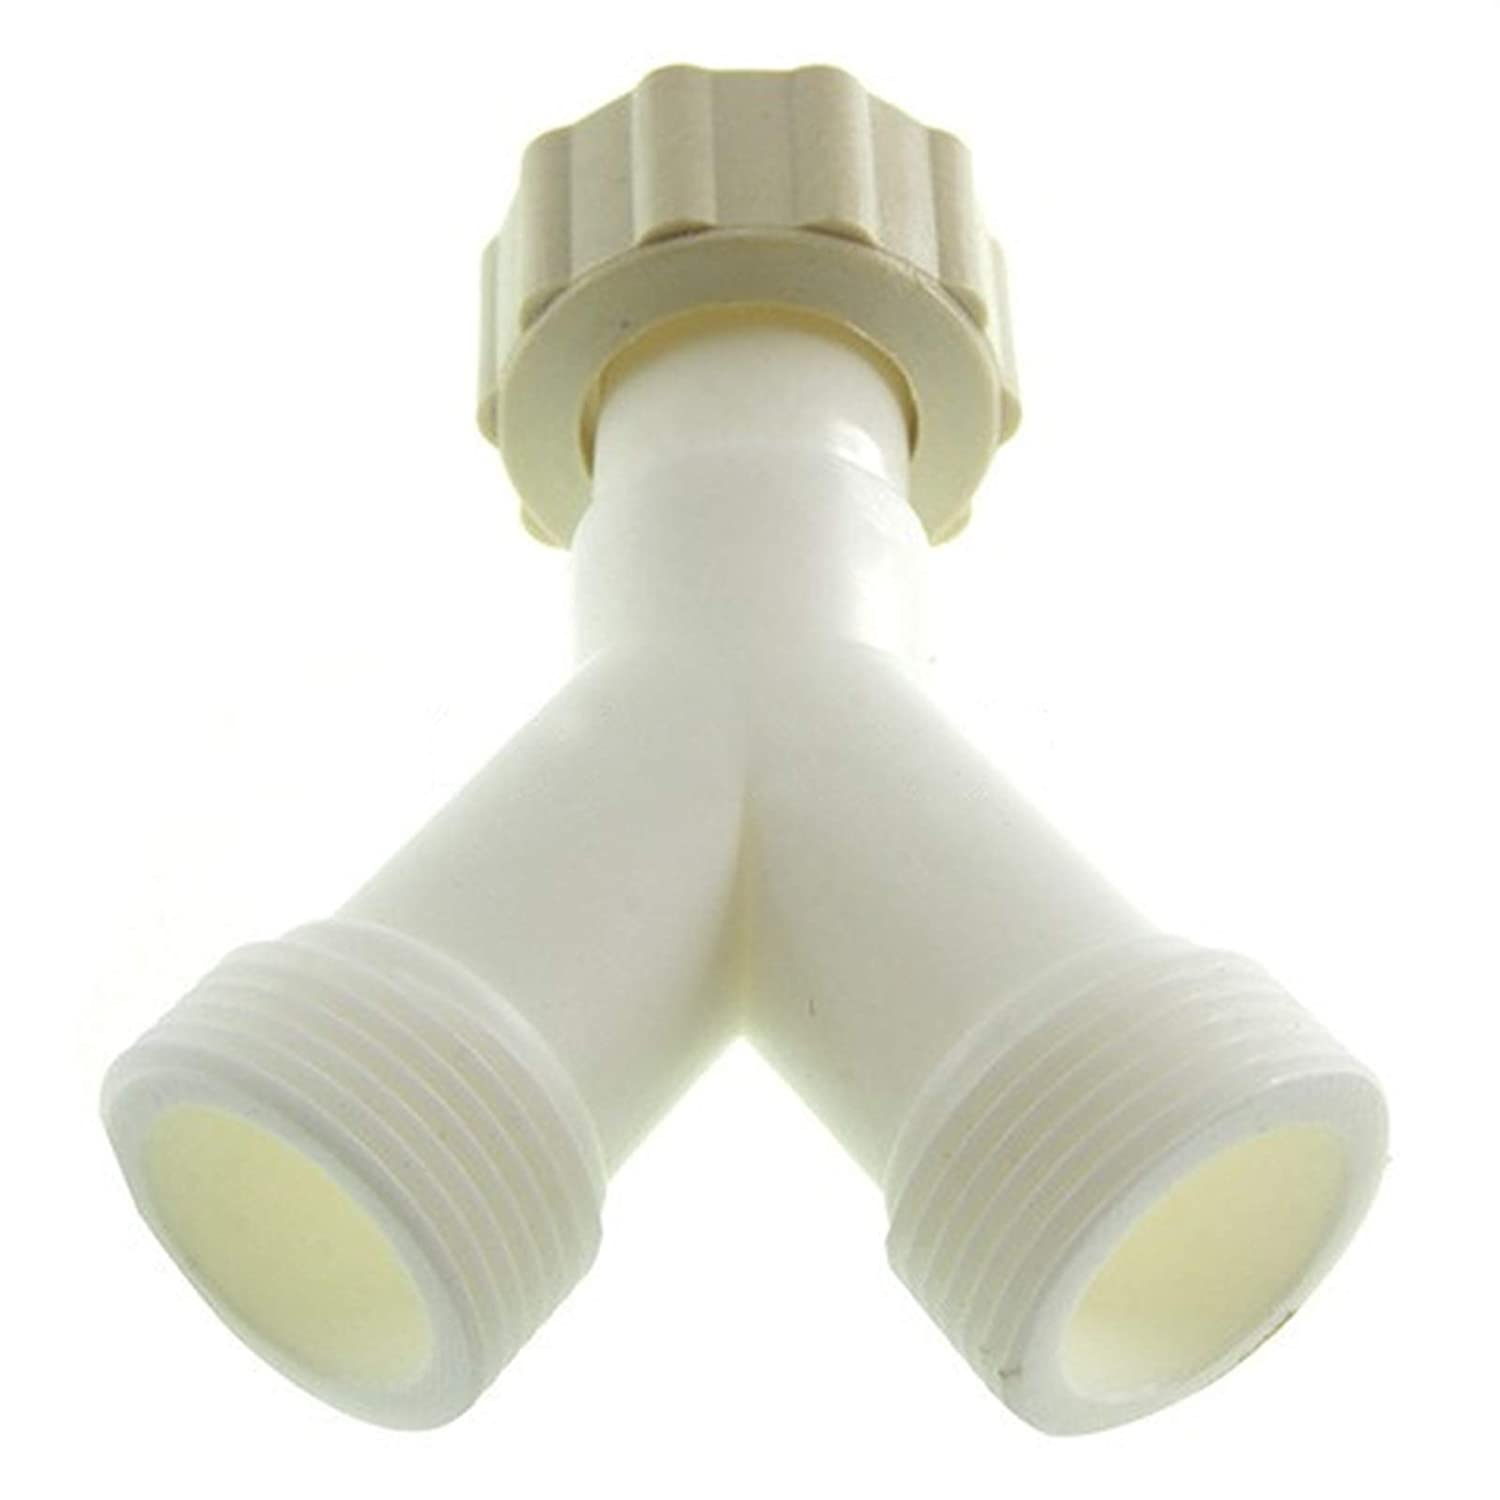 SPARES2GO Cold Water Fill Inlet Y-piece Splitter for Indesit Washing Machine//Dishwasher 3//4